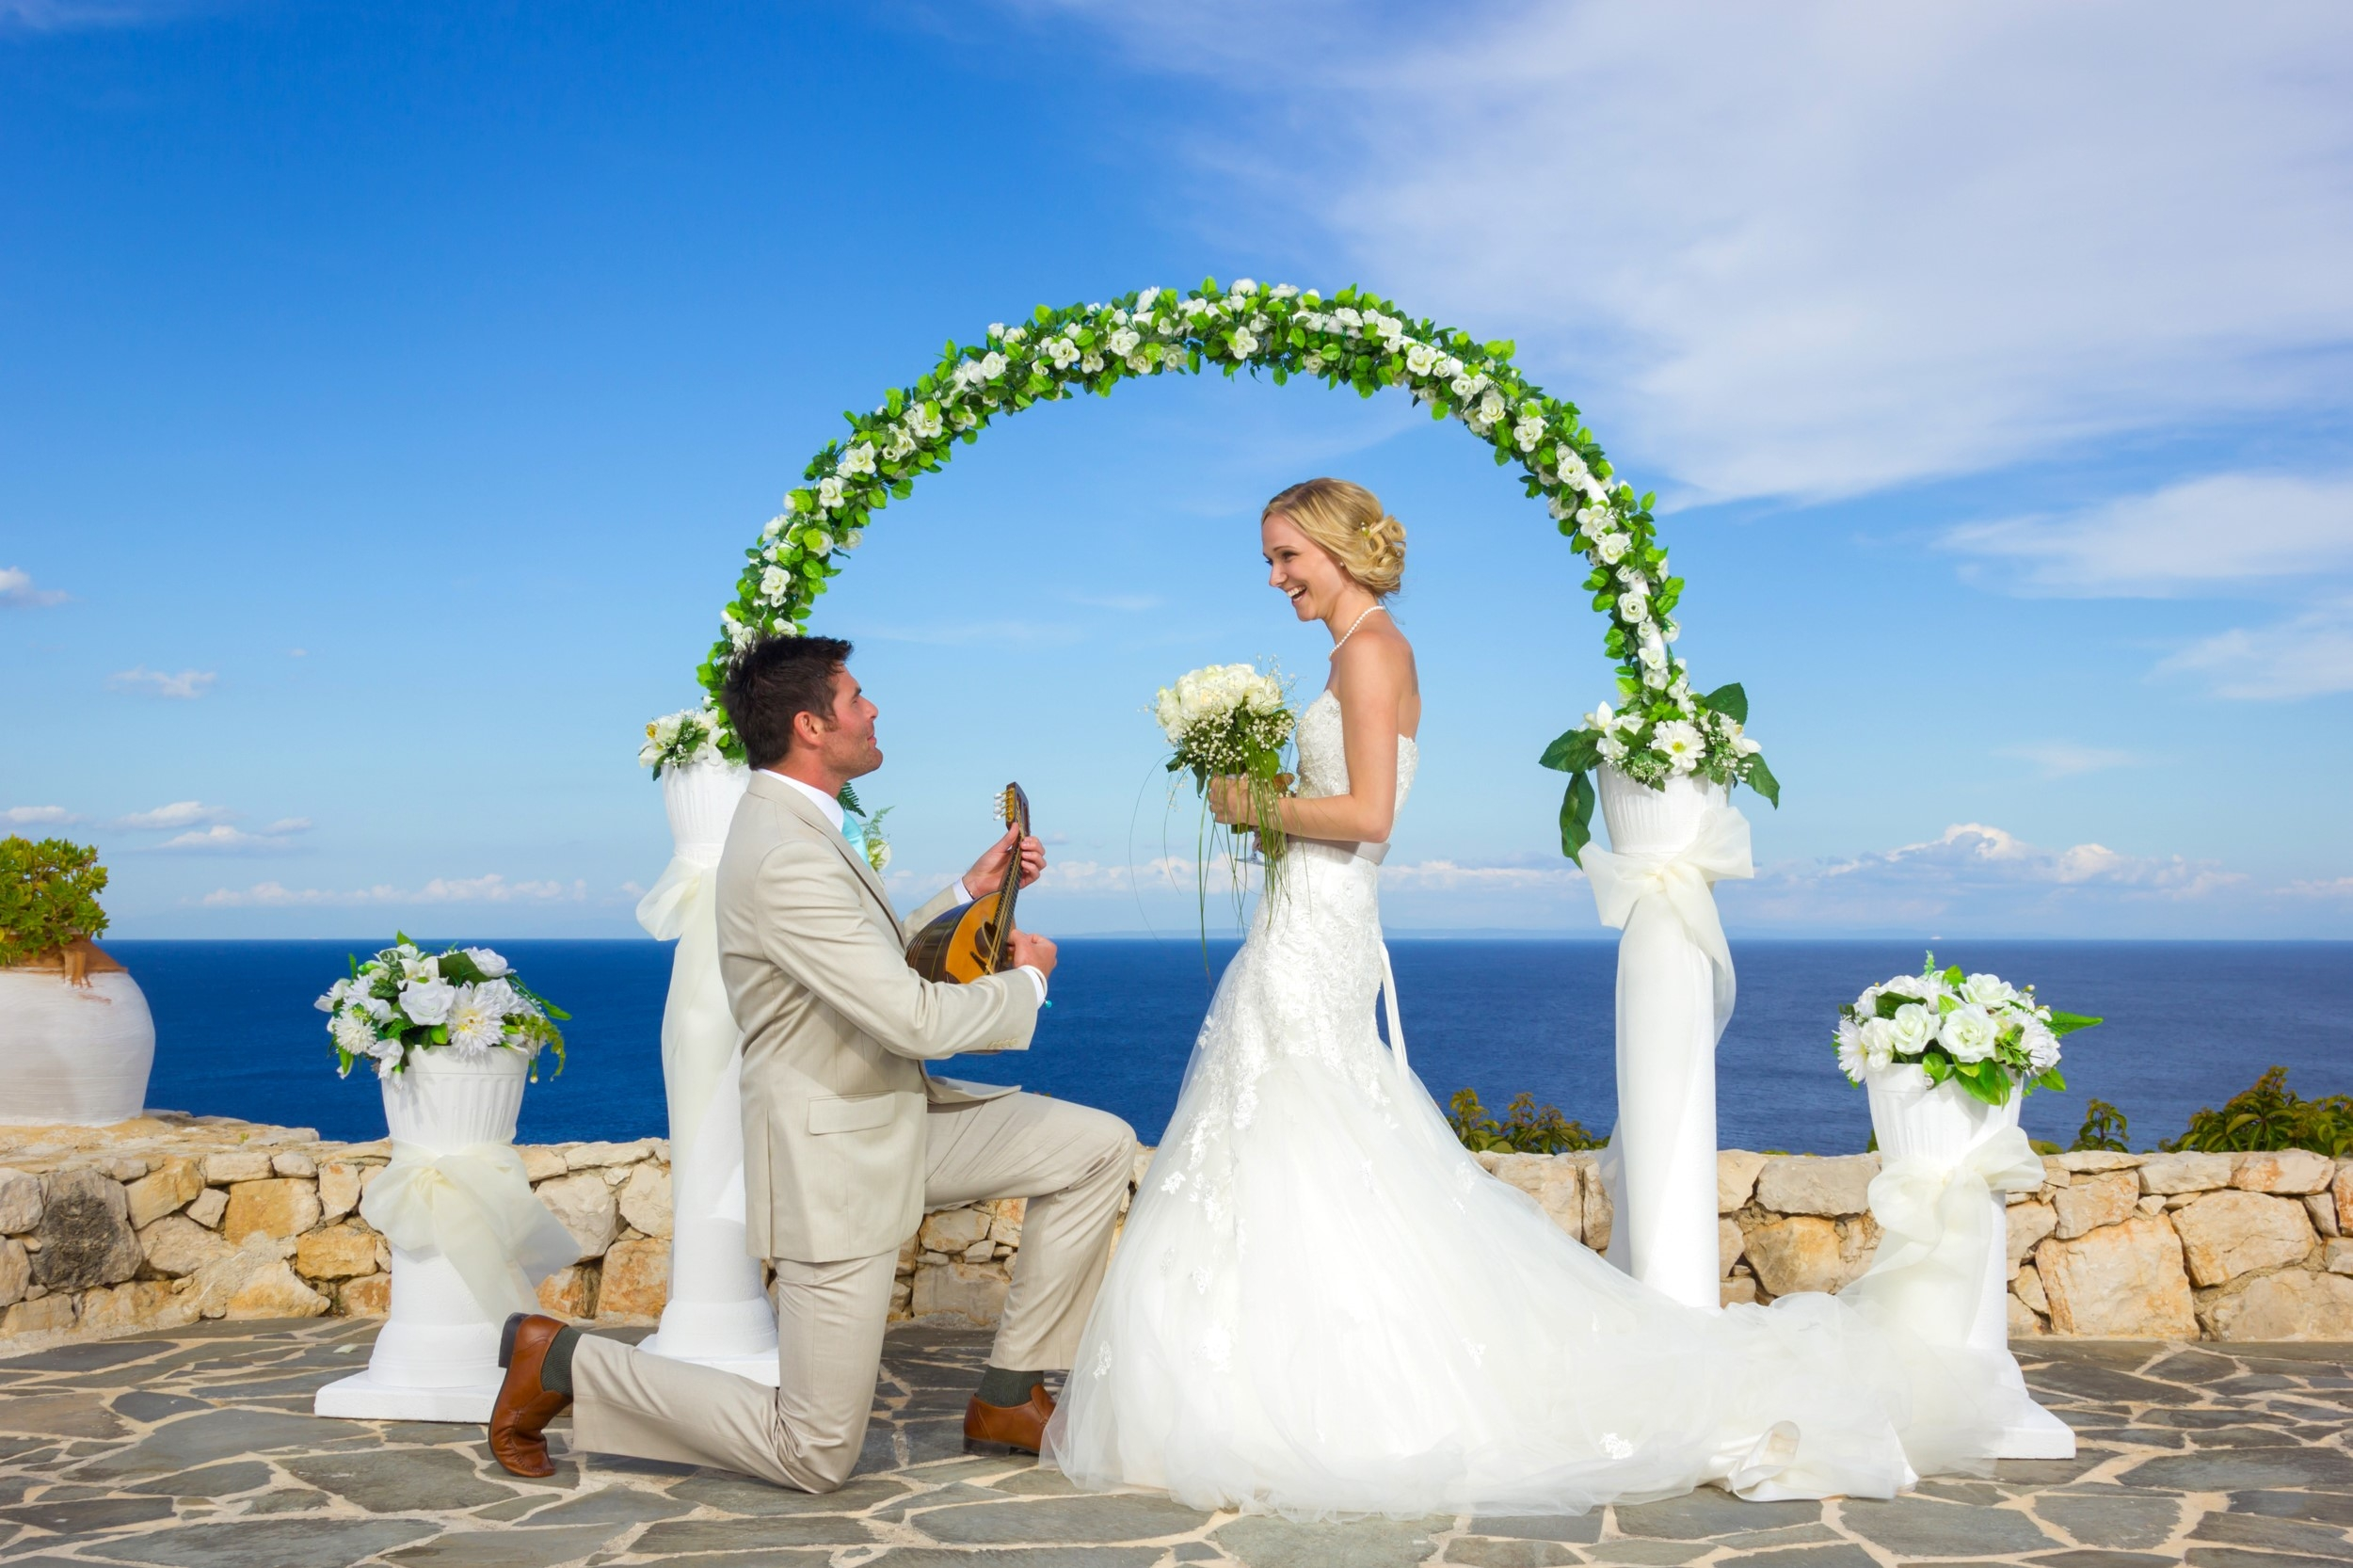 PART 2 WEDDING BEACH COUPLES PORTRAITS COLOUR AND BLACK AND WHITE 003819 (Custom)